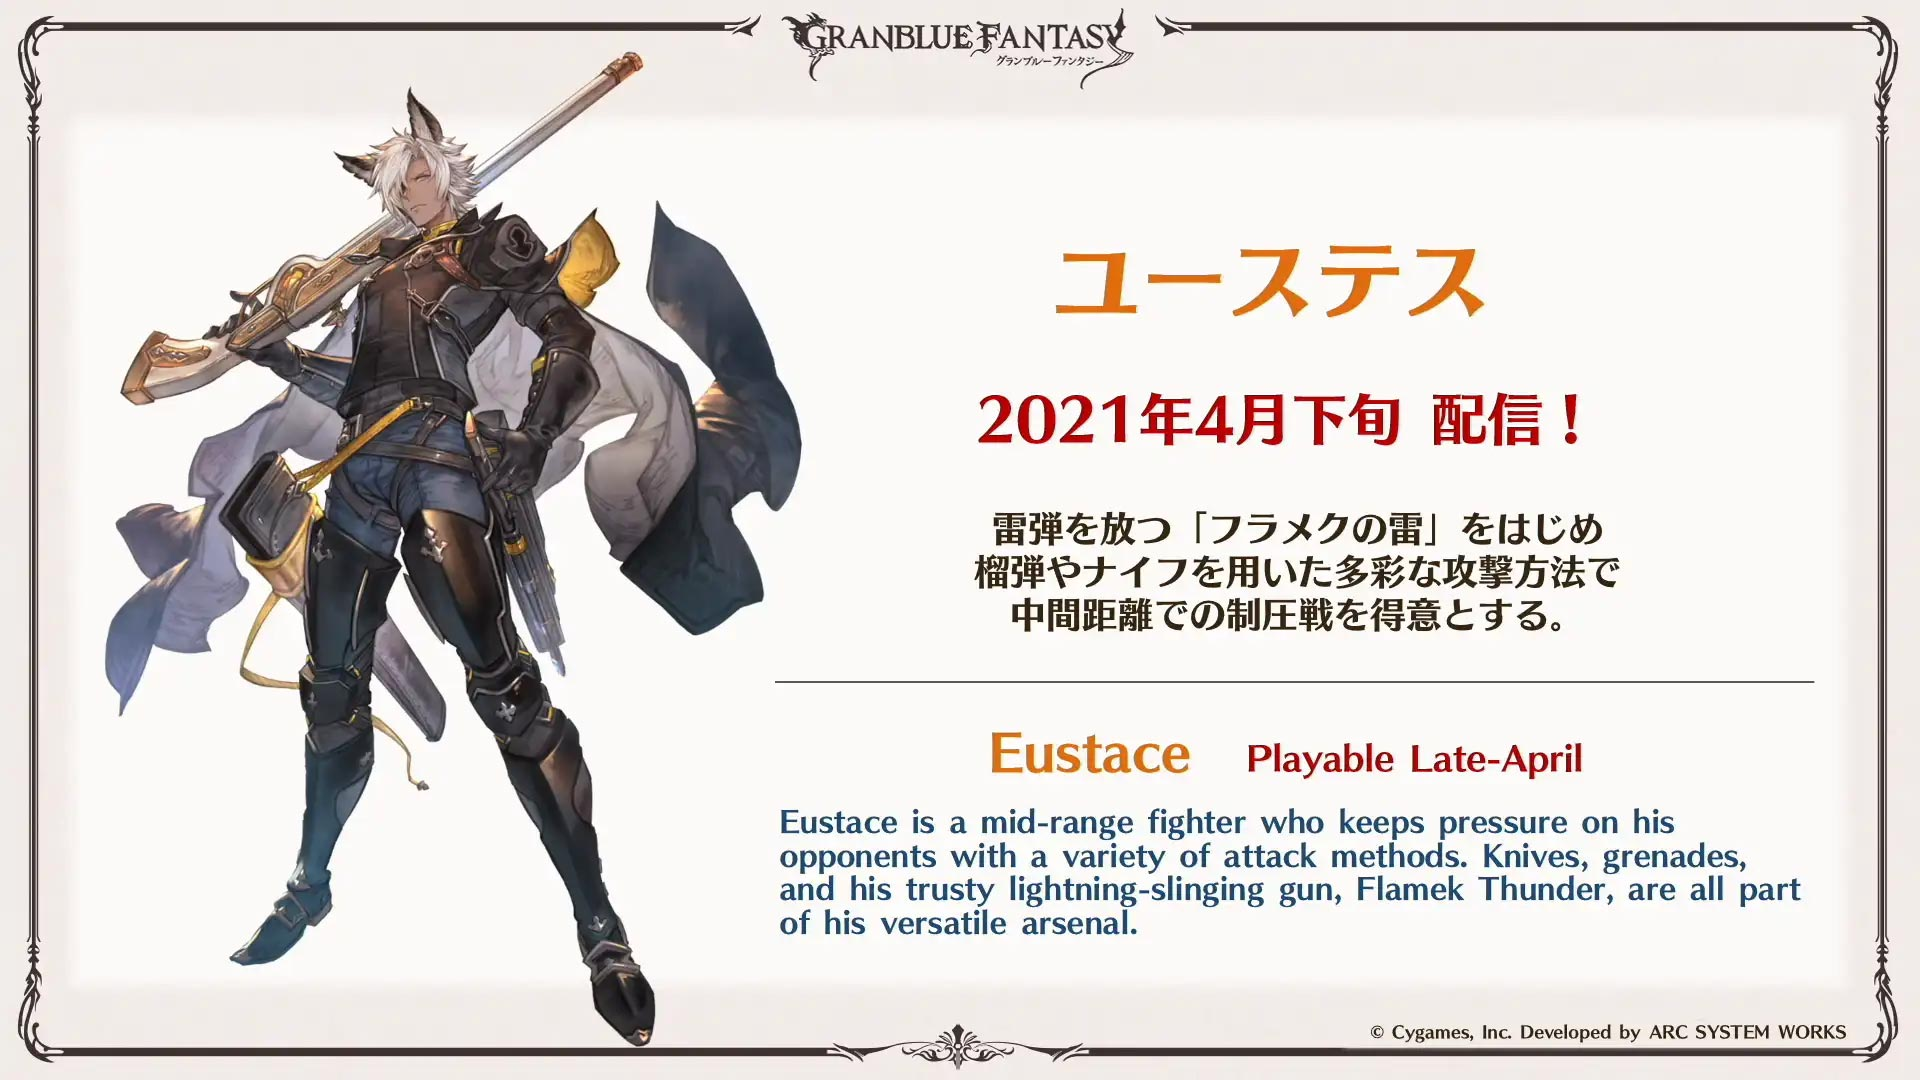 Granblue Fantasy Versus Eustace Reveal Trailer Gallery 6 out of 11 image gallery